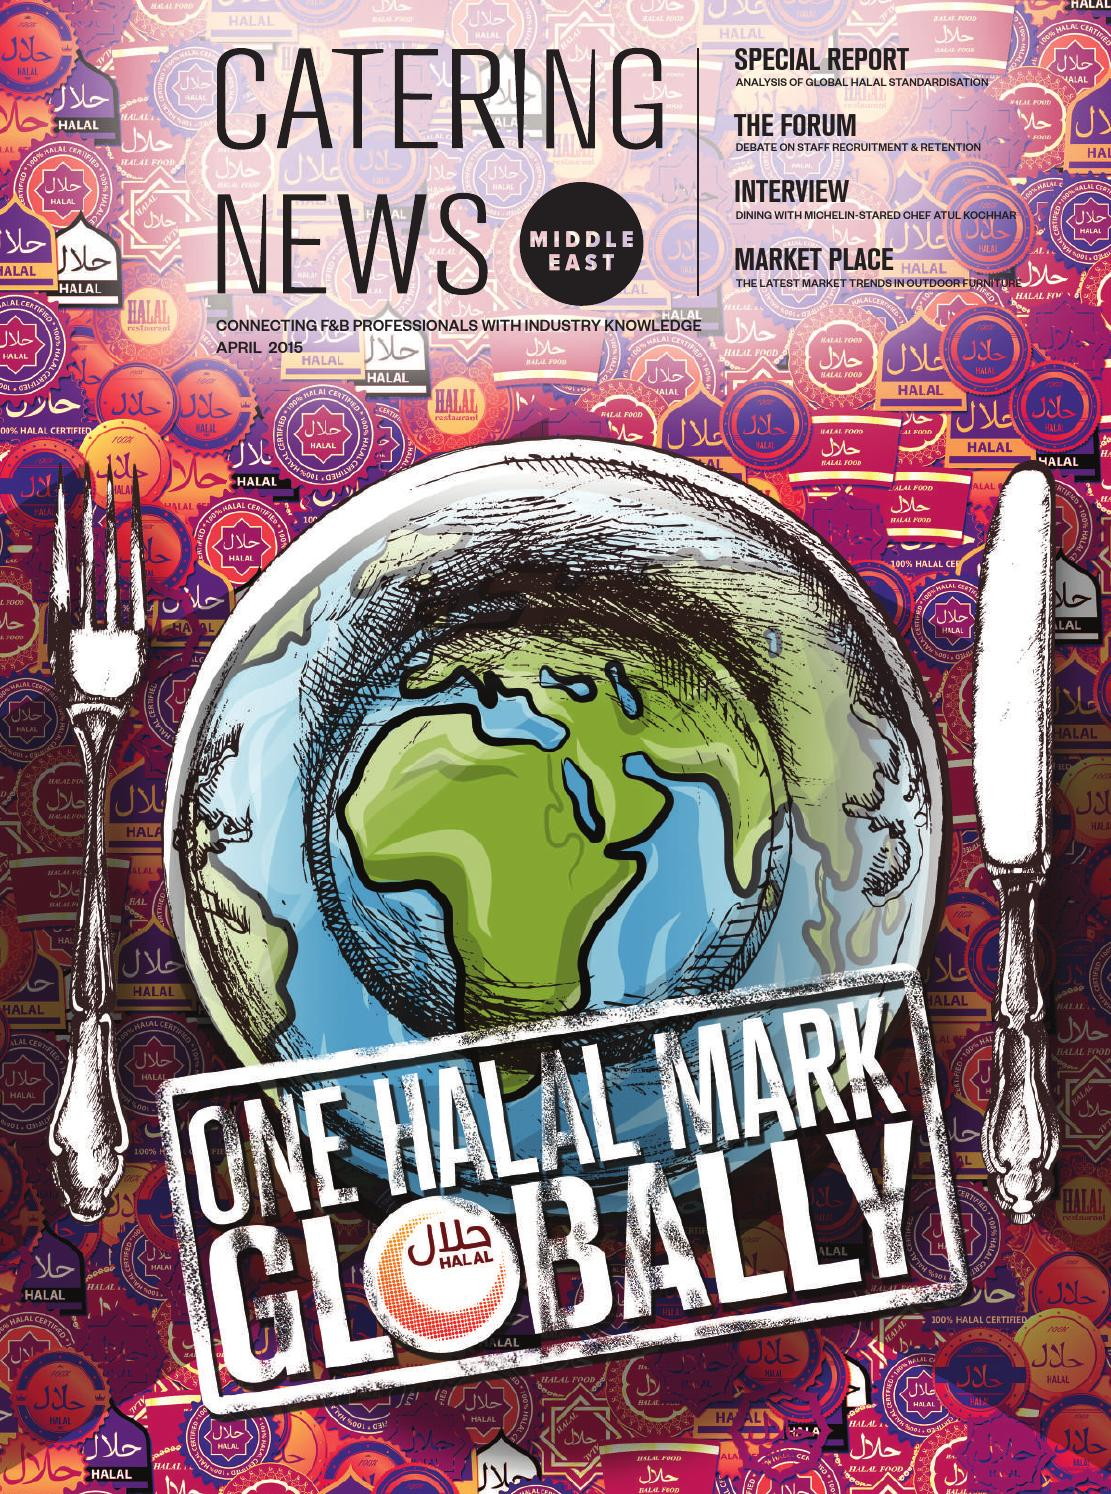 Catering News ME - April 2015 by BNC Publishing - issuu